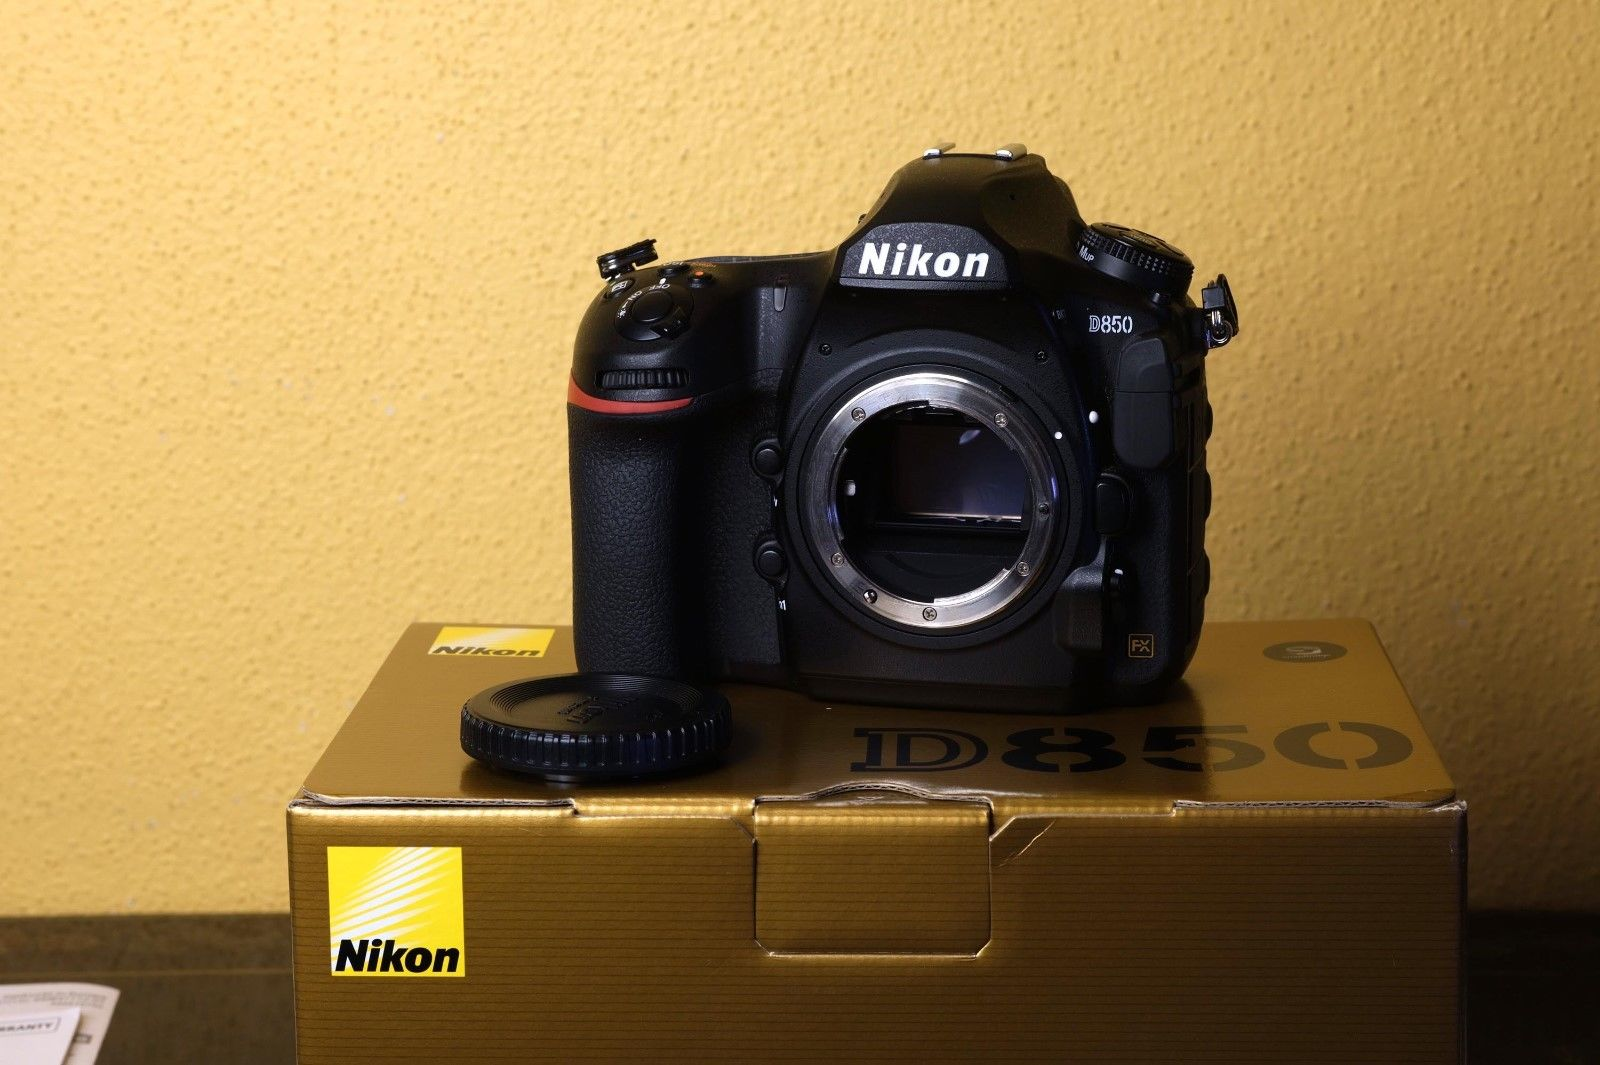 Nikon D850 Digitalkameras Foto & Video 2